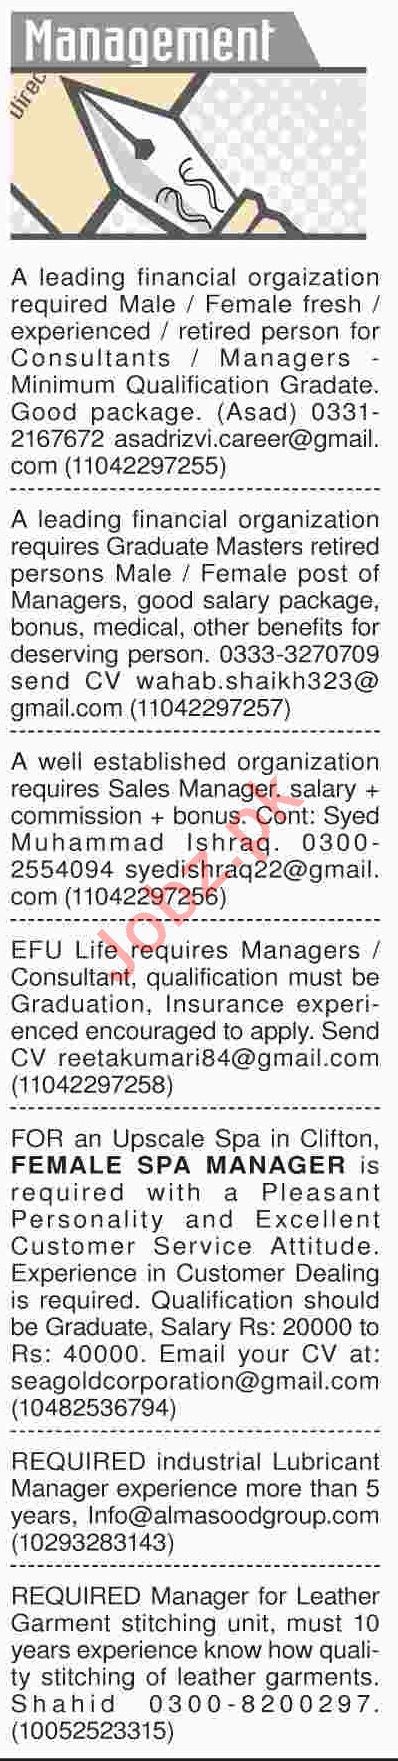 Dawn Sunday Classified Ads 14th April 2019 for Management